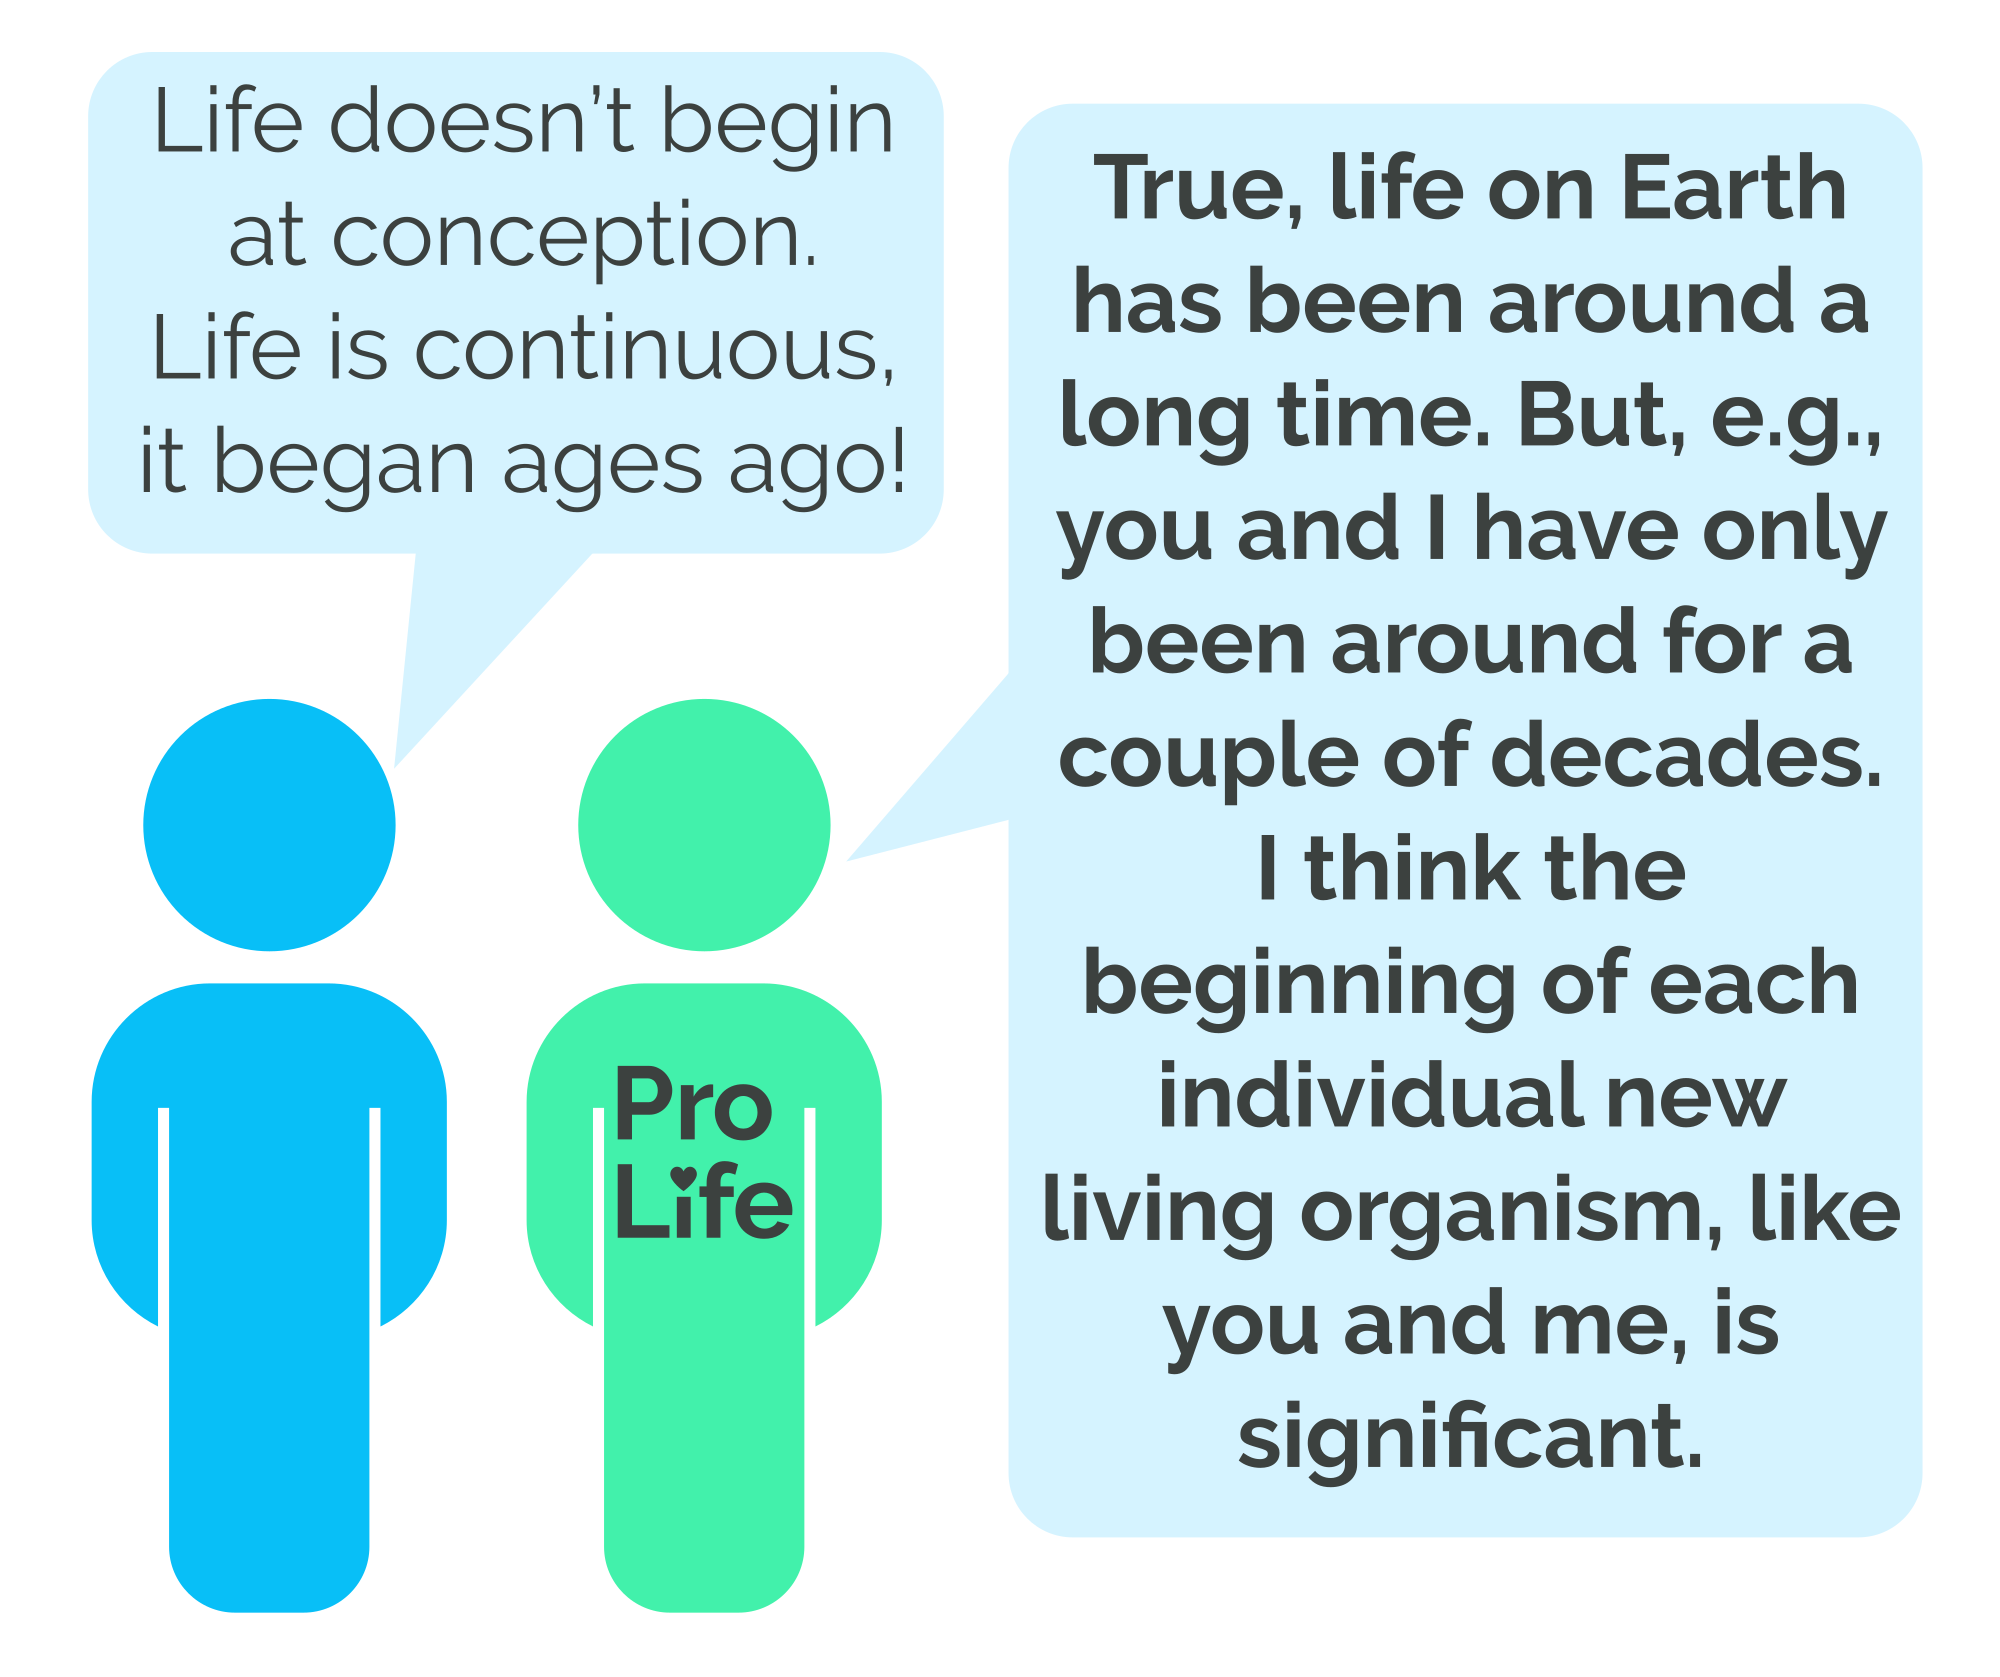 Person 1: Life doesn't begin at conception. Life is continuous, it began ages ago! Person 2 (our hero): True, life on Earth has been around a long time. But, e.g., you and I have only been around for a couple of decades. I think the beginning of each individual new living organism, like you and me, is significant.